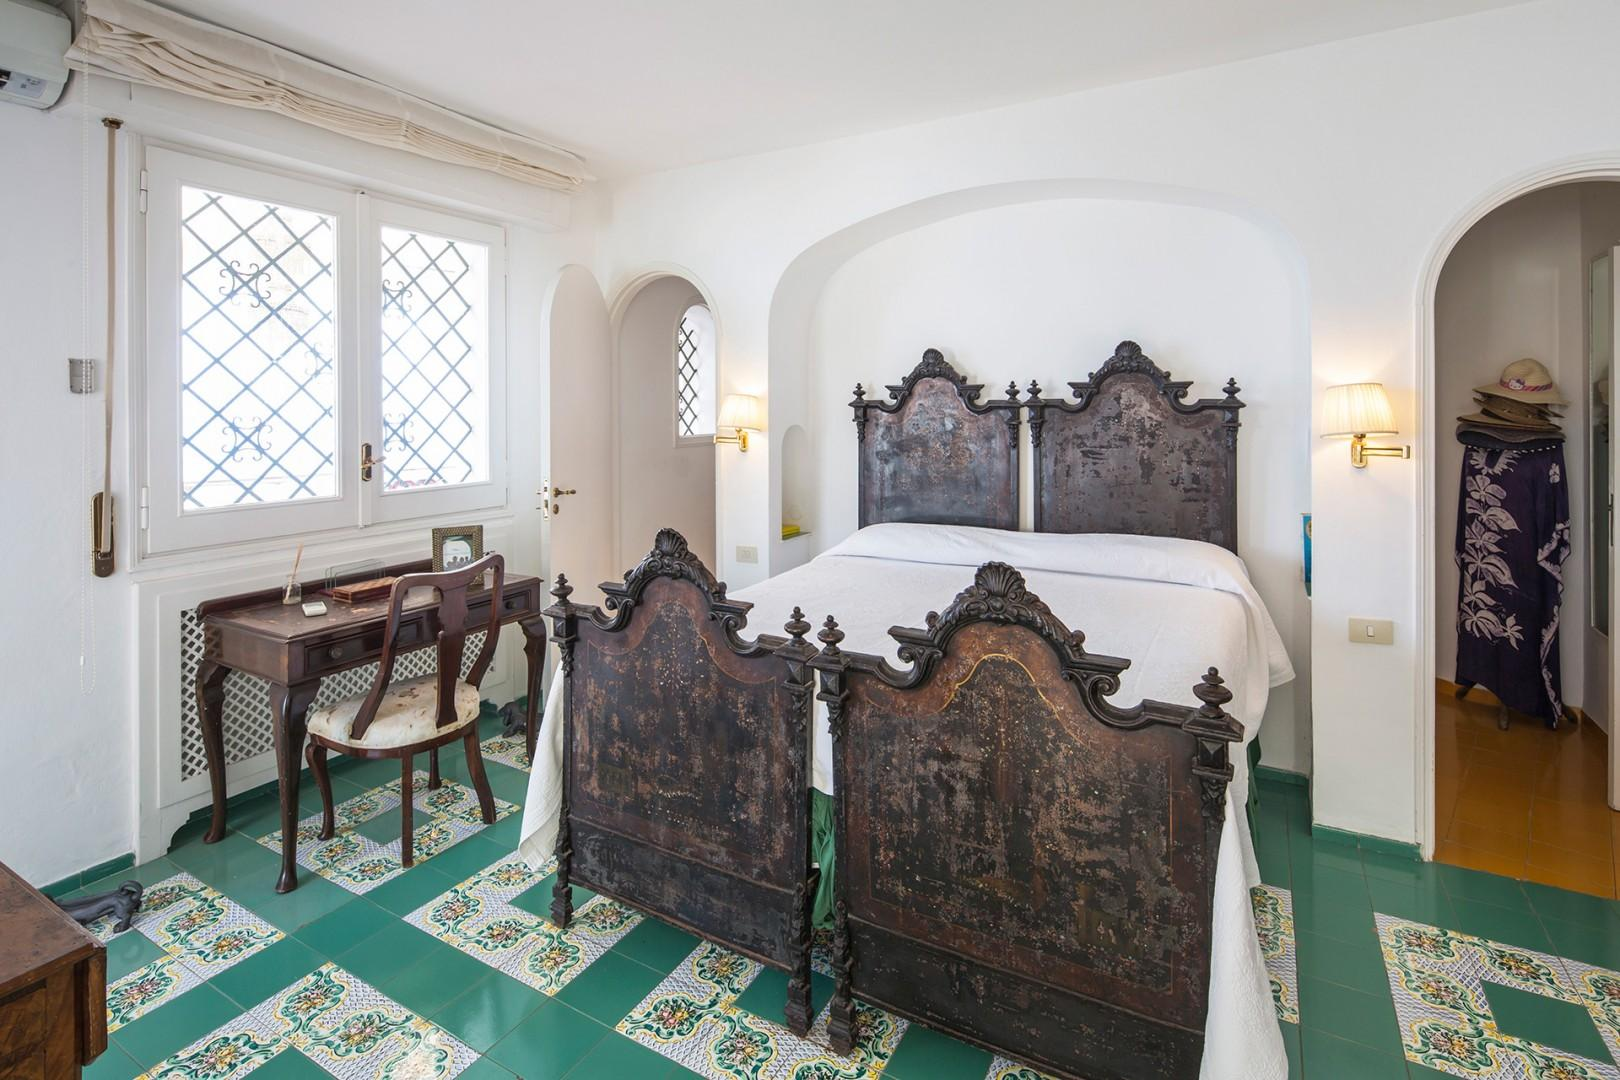 In bedroom 1 traditional, antique bedsteads are used together to hold a large mattress.